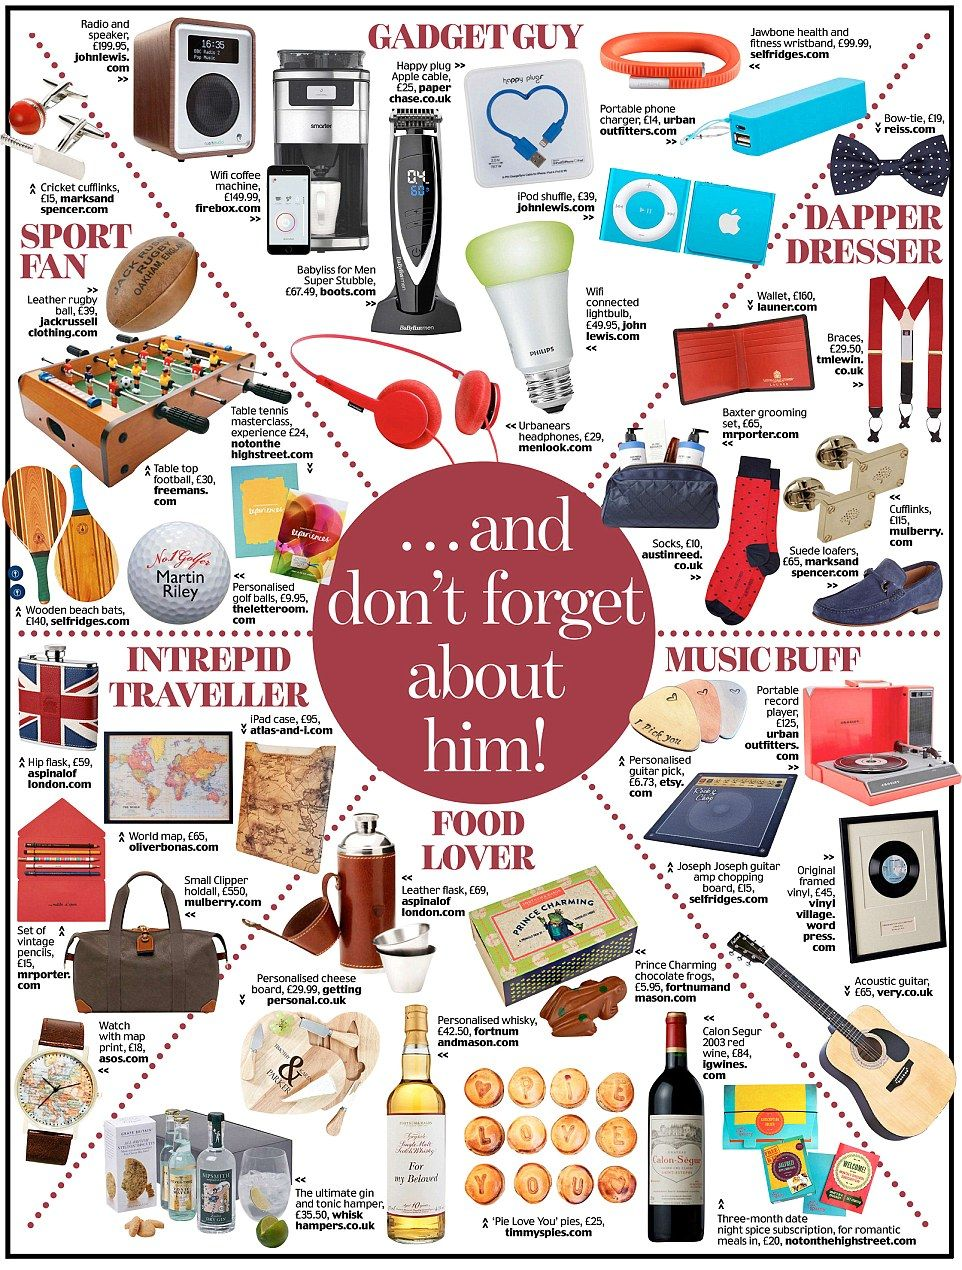 We Ve Got The Ultimate Valentine S Gift Guide For Men And Women Valentines Gift Guide Gift Guide For Men Valentine Gifts